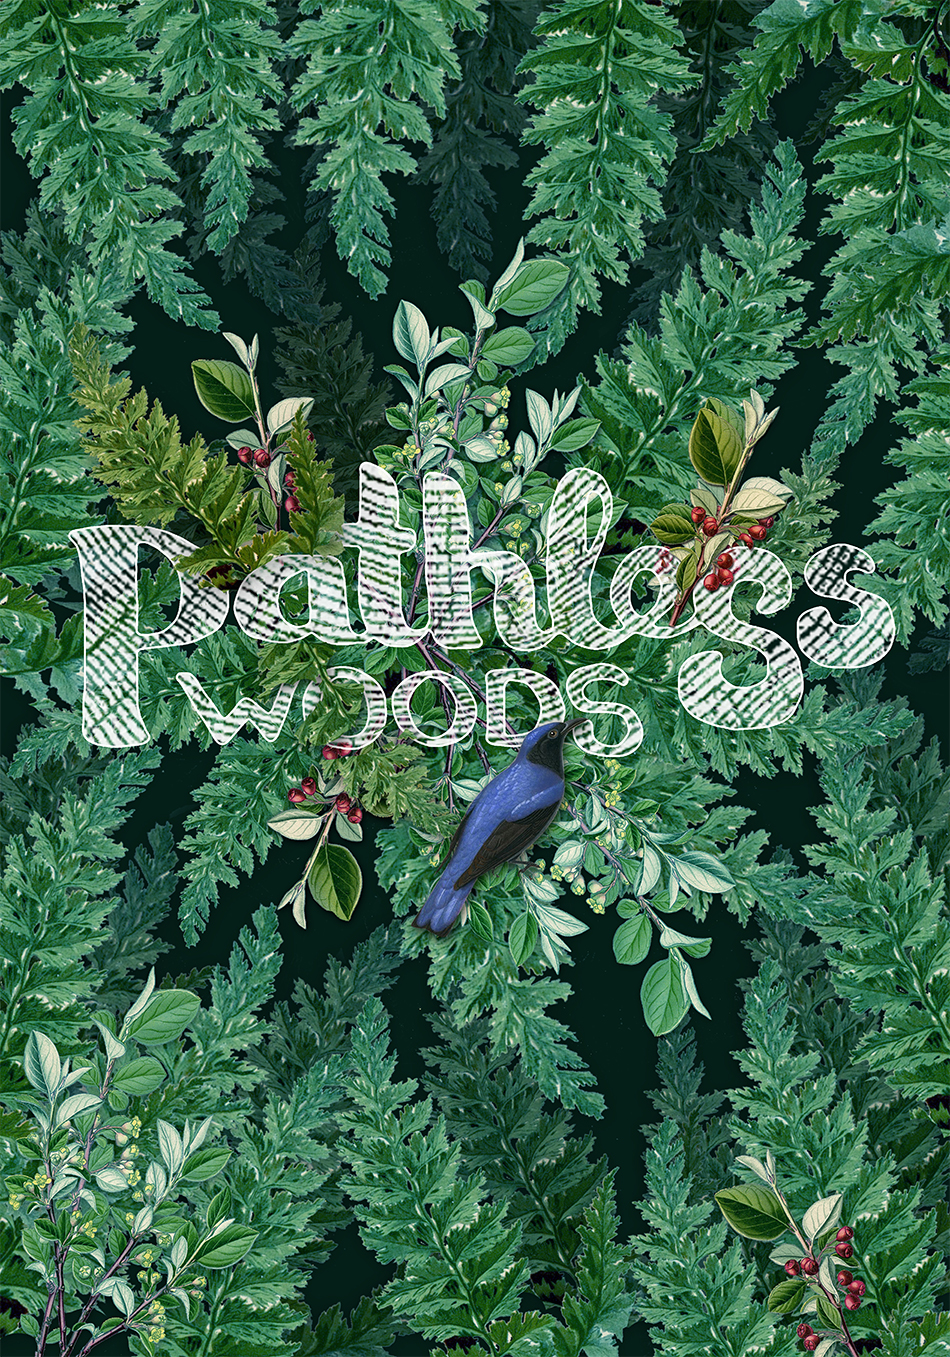 work_PathlessWoods2